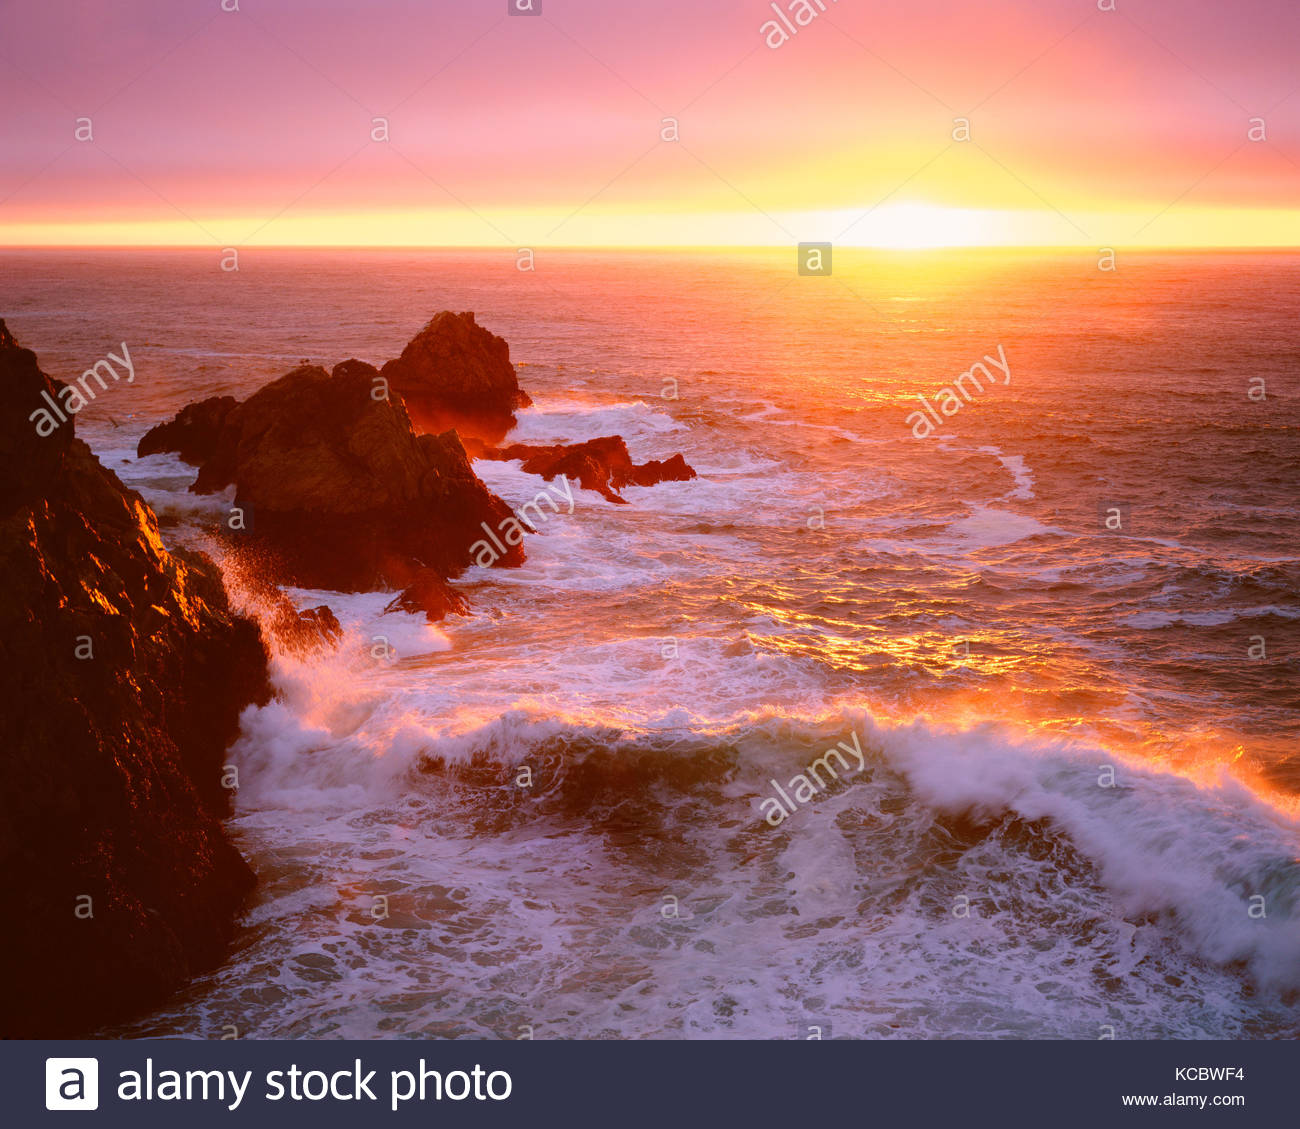 Sonnenuntergang an der Küste und Wave, Phillip Burton Wüste, Point Reyes National Seashore, Kalifornien Stockbild